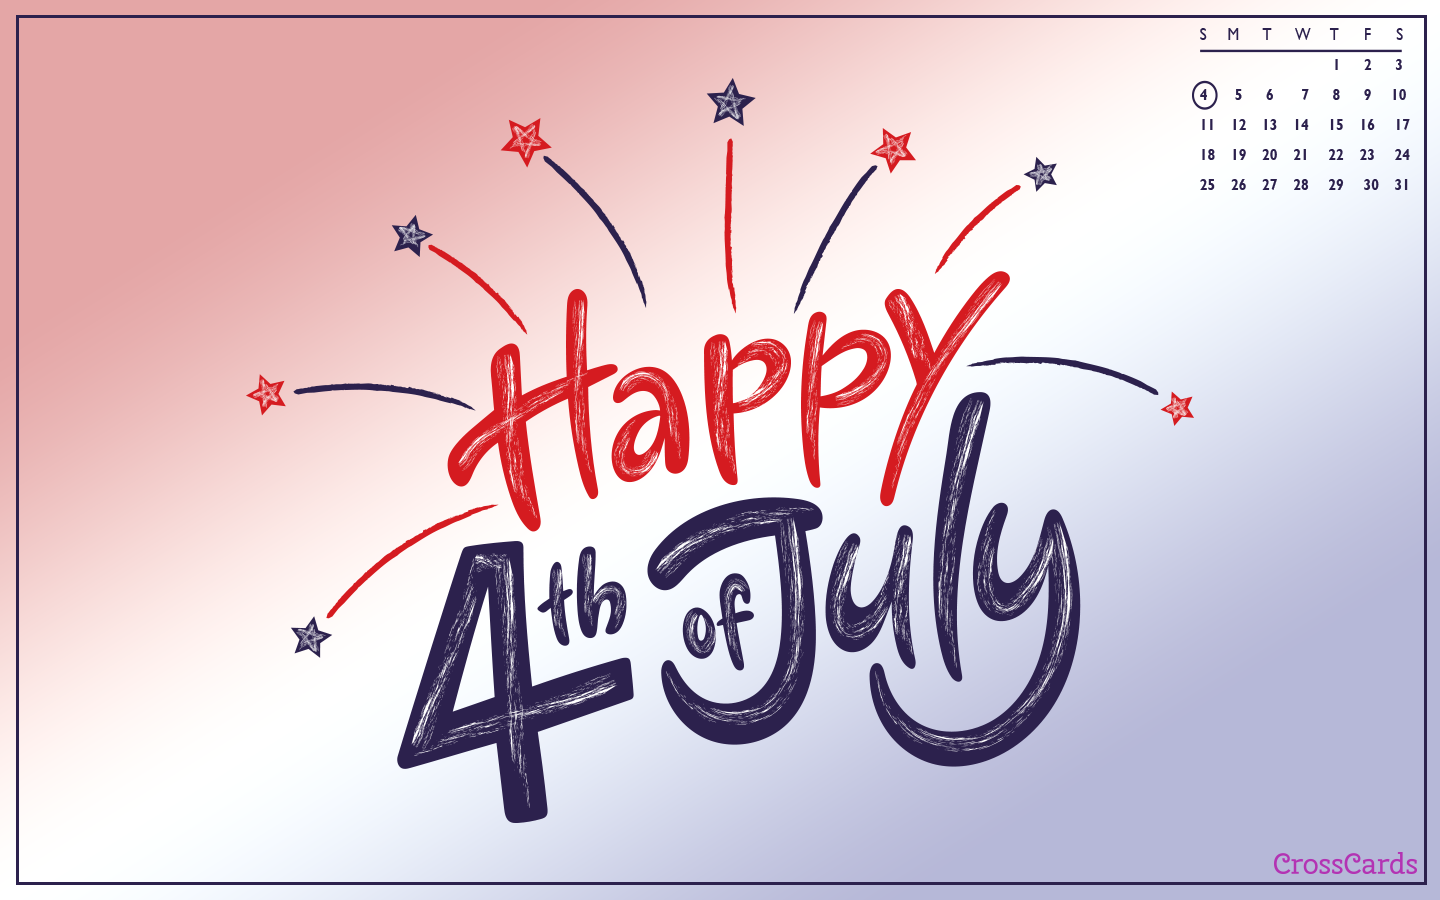 July 2021 - Happy Fourth! mobile phone wallpaper